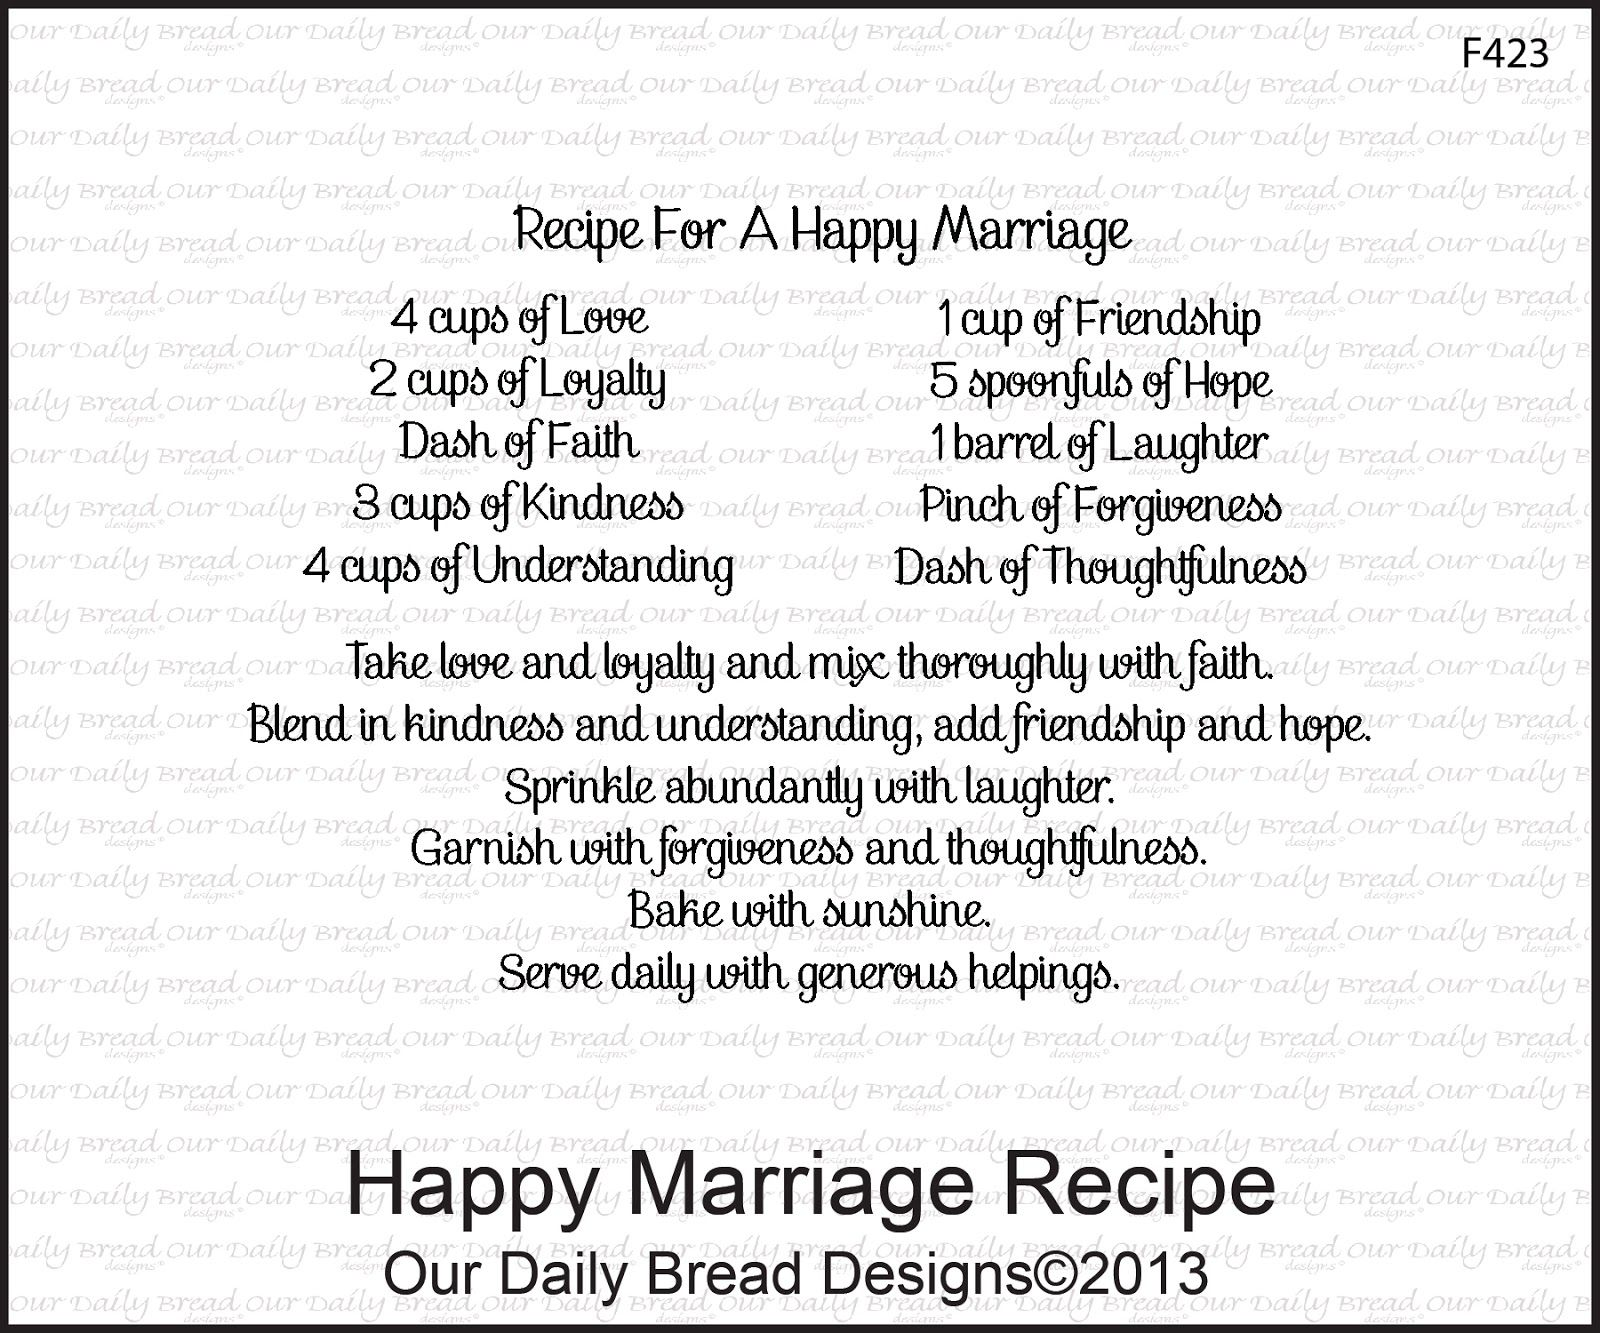 Happy Marriage Recipe This could be said for any